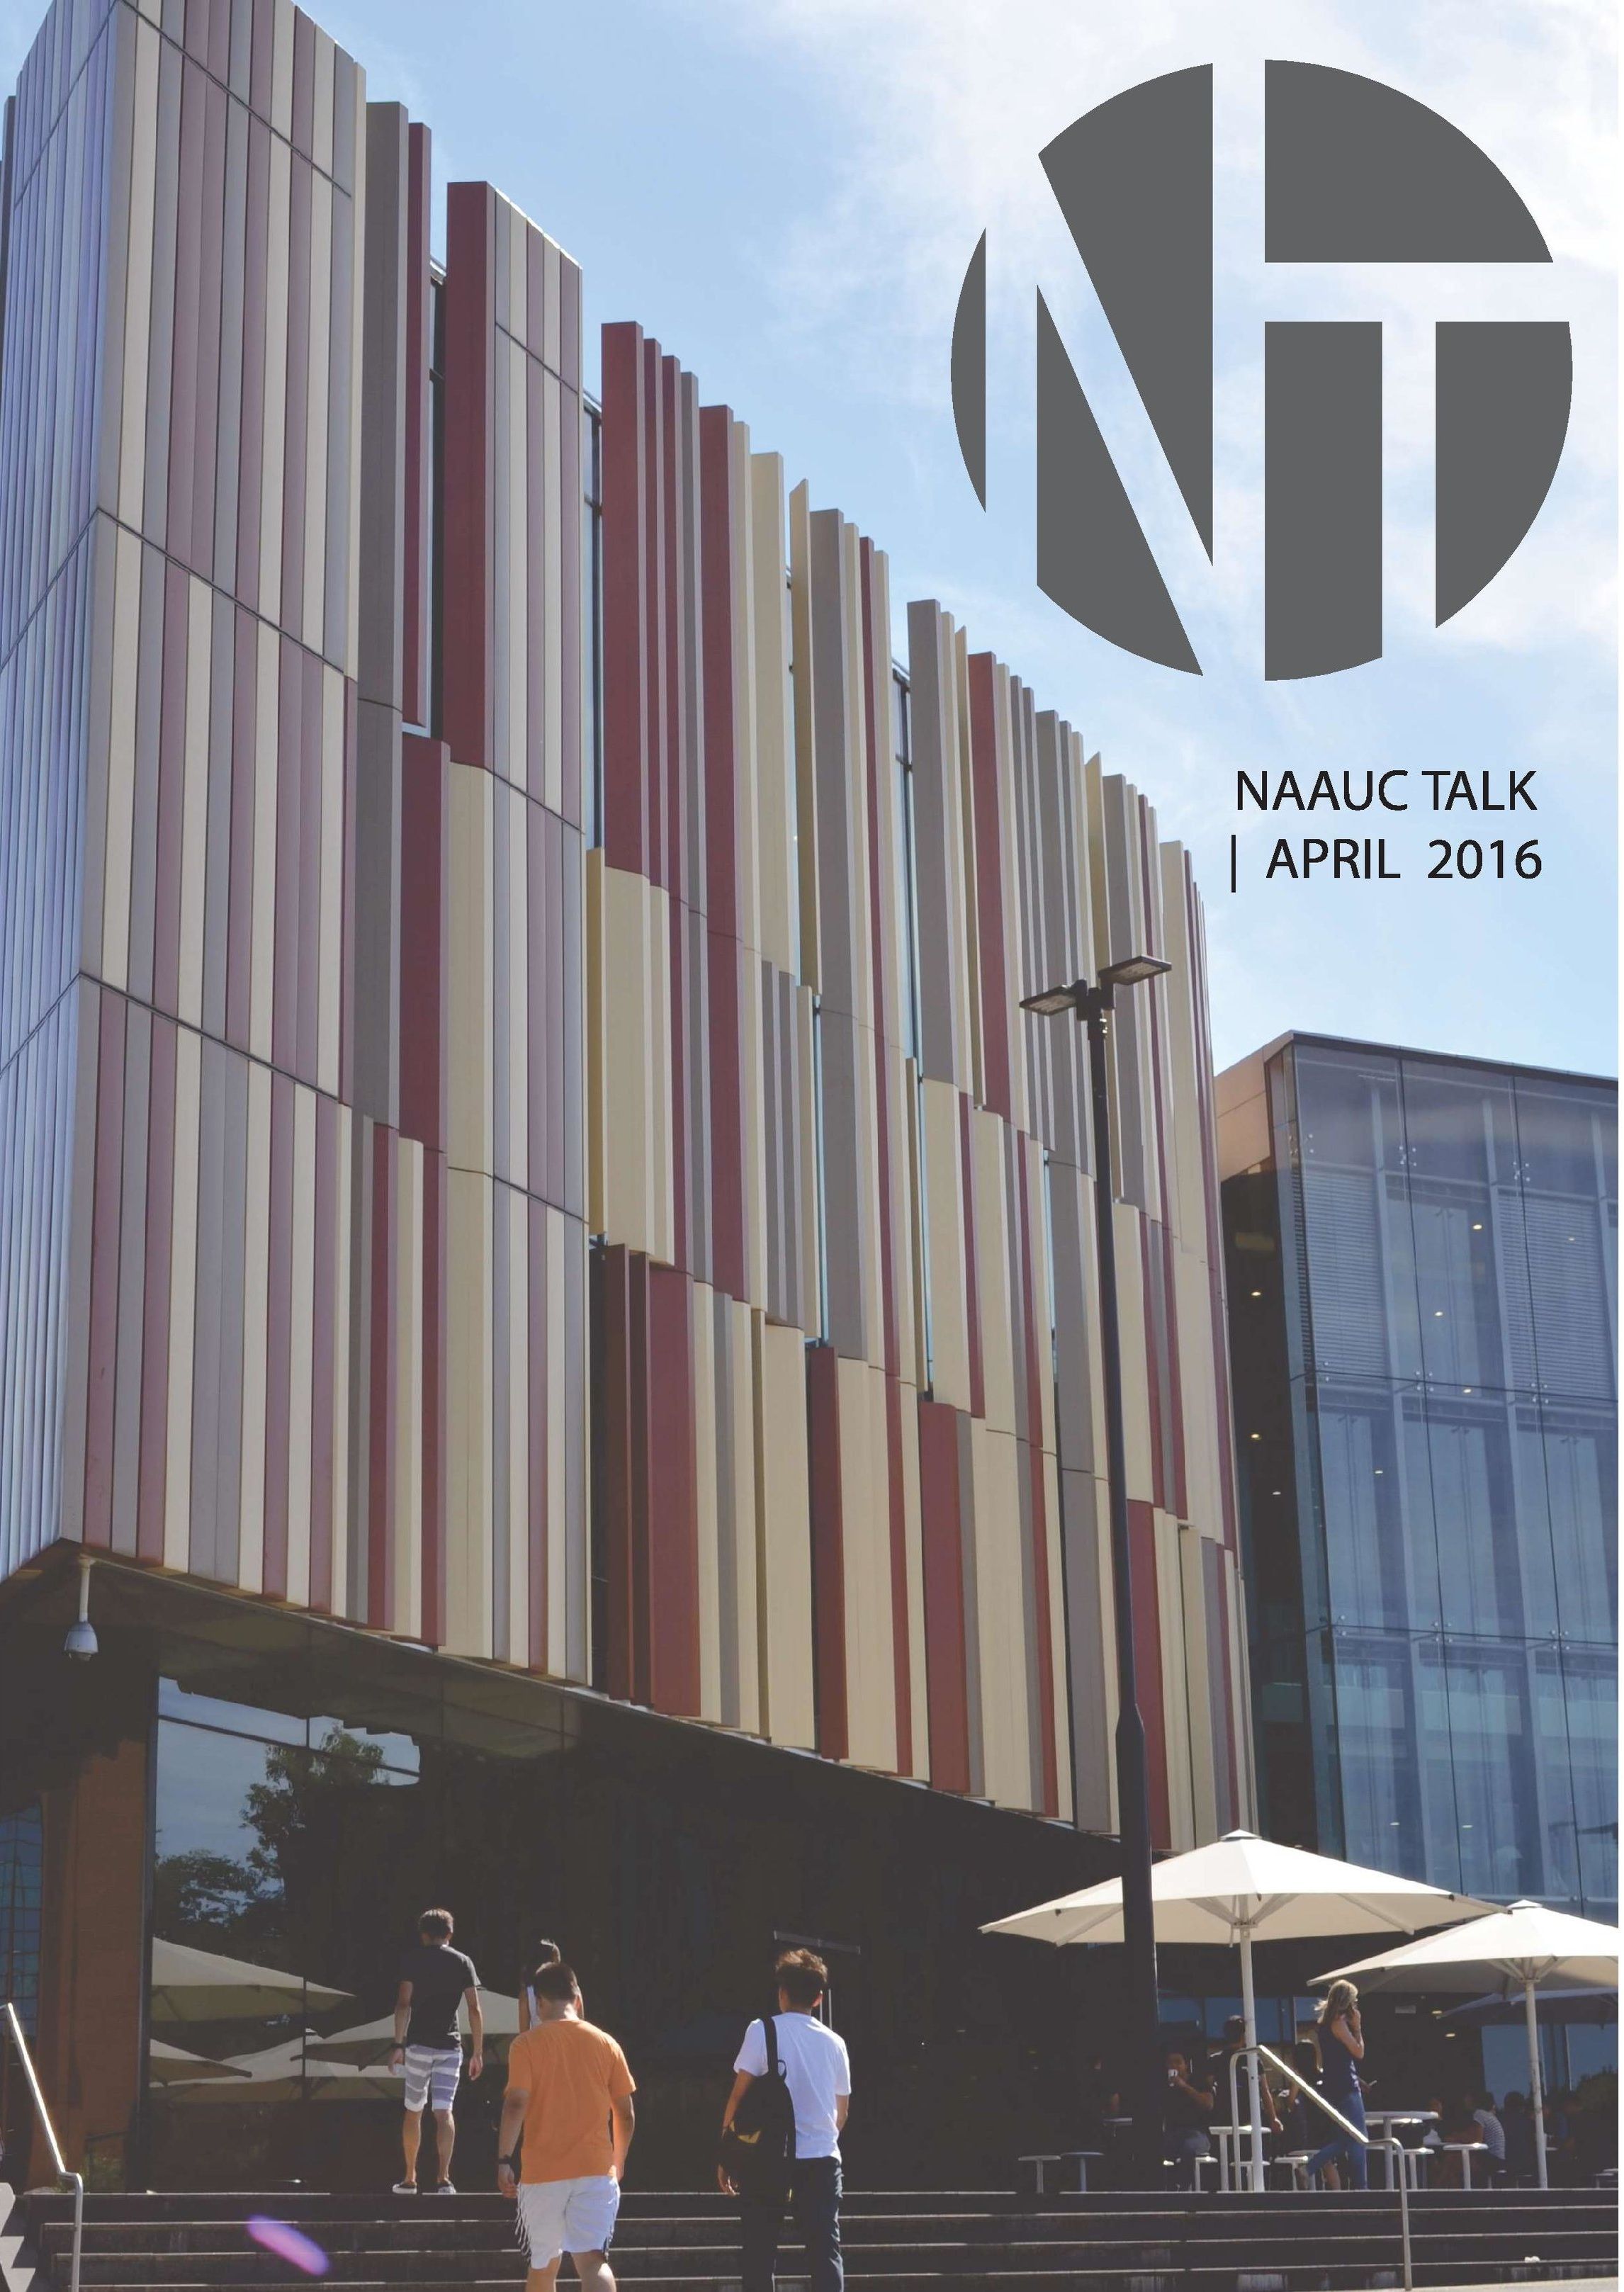 NAAUC Talk April 2016-page-001.jpg